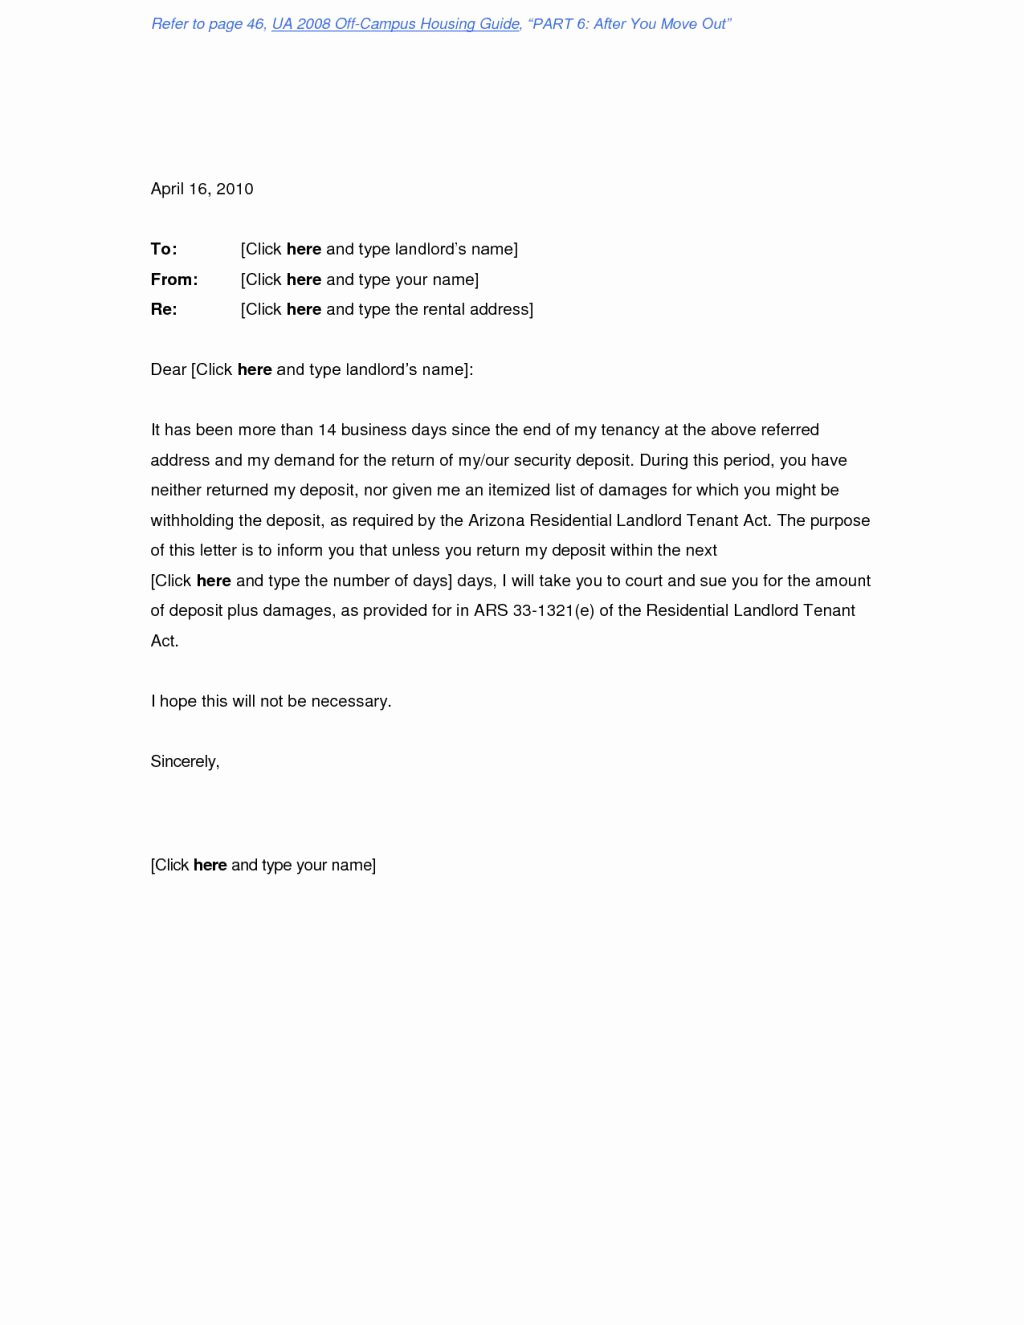 Security Deposit Letter format Awesome Request Letter format Refund County Bar Foundation